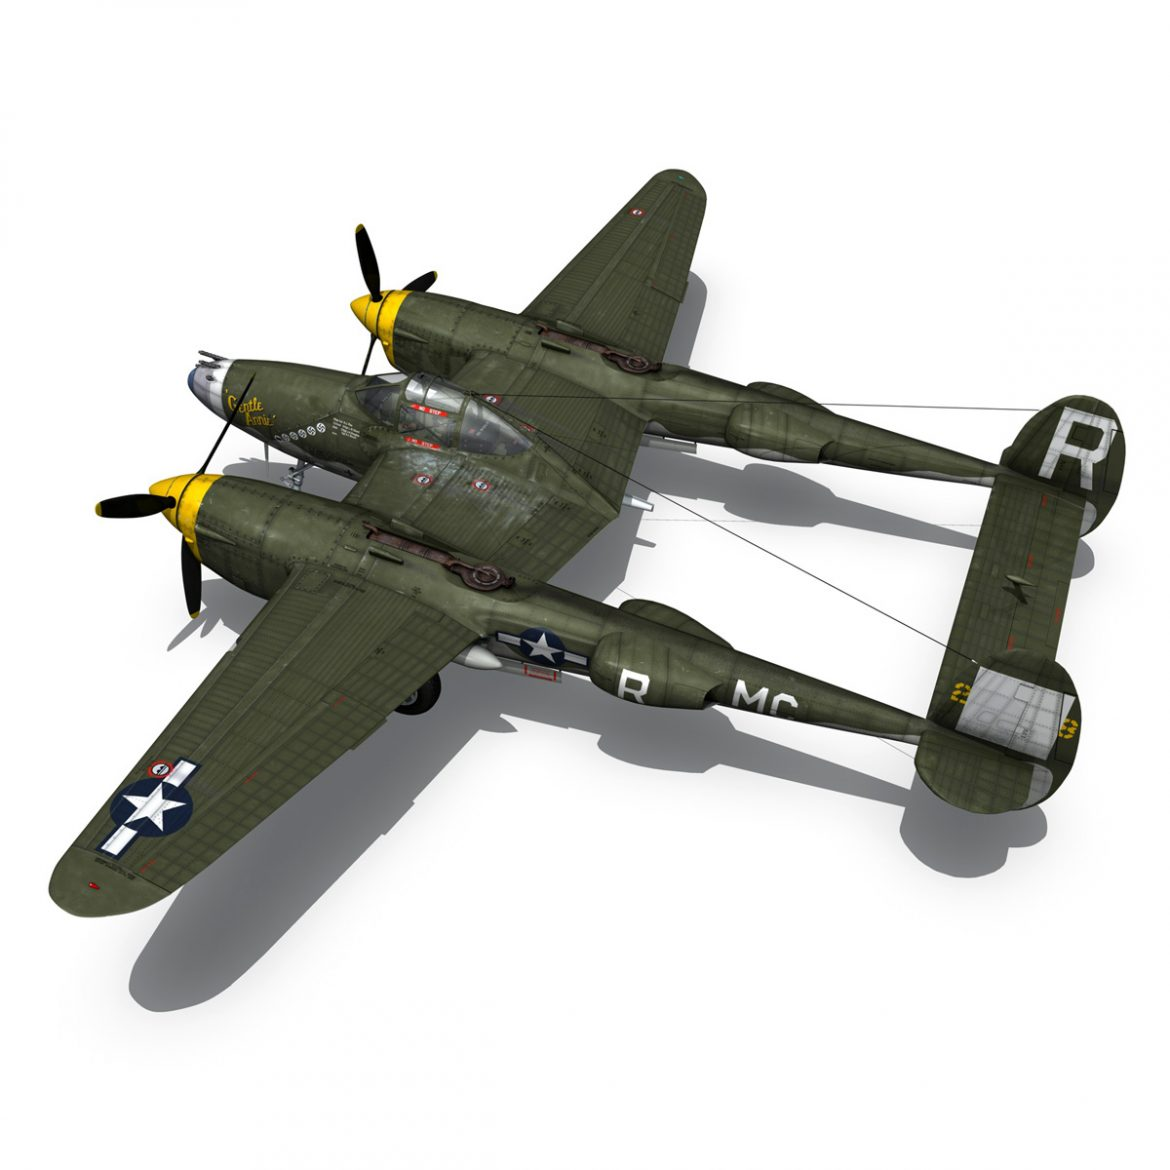 lockheed p-38 lightning – gentle annie 3d model fbx c4d lwo obj 300090